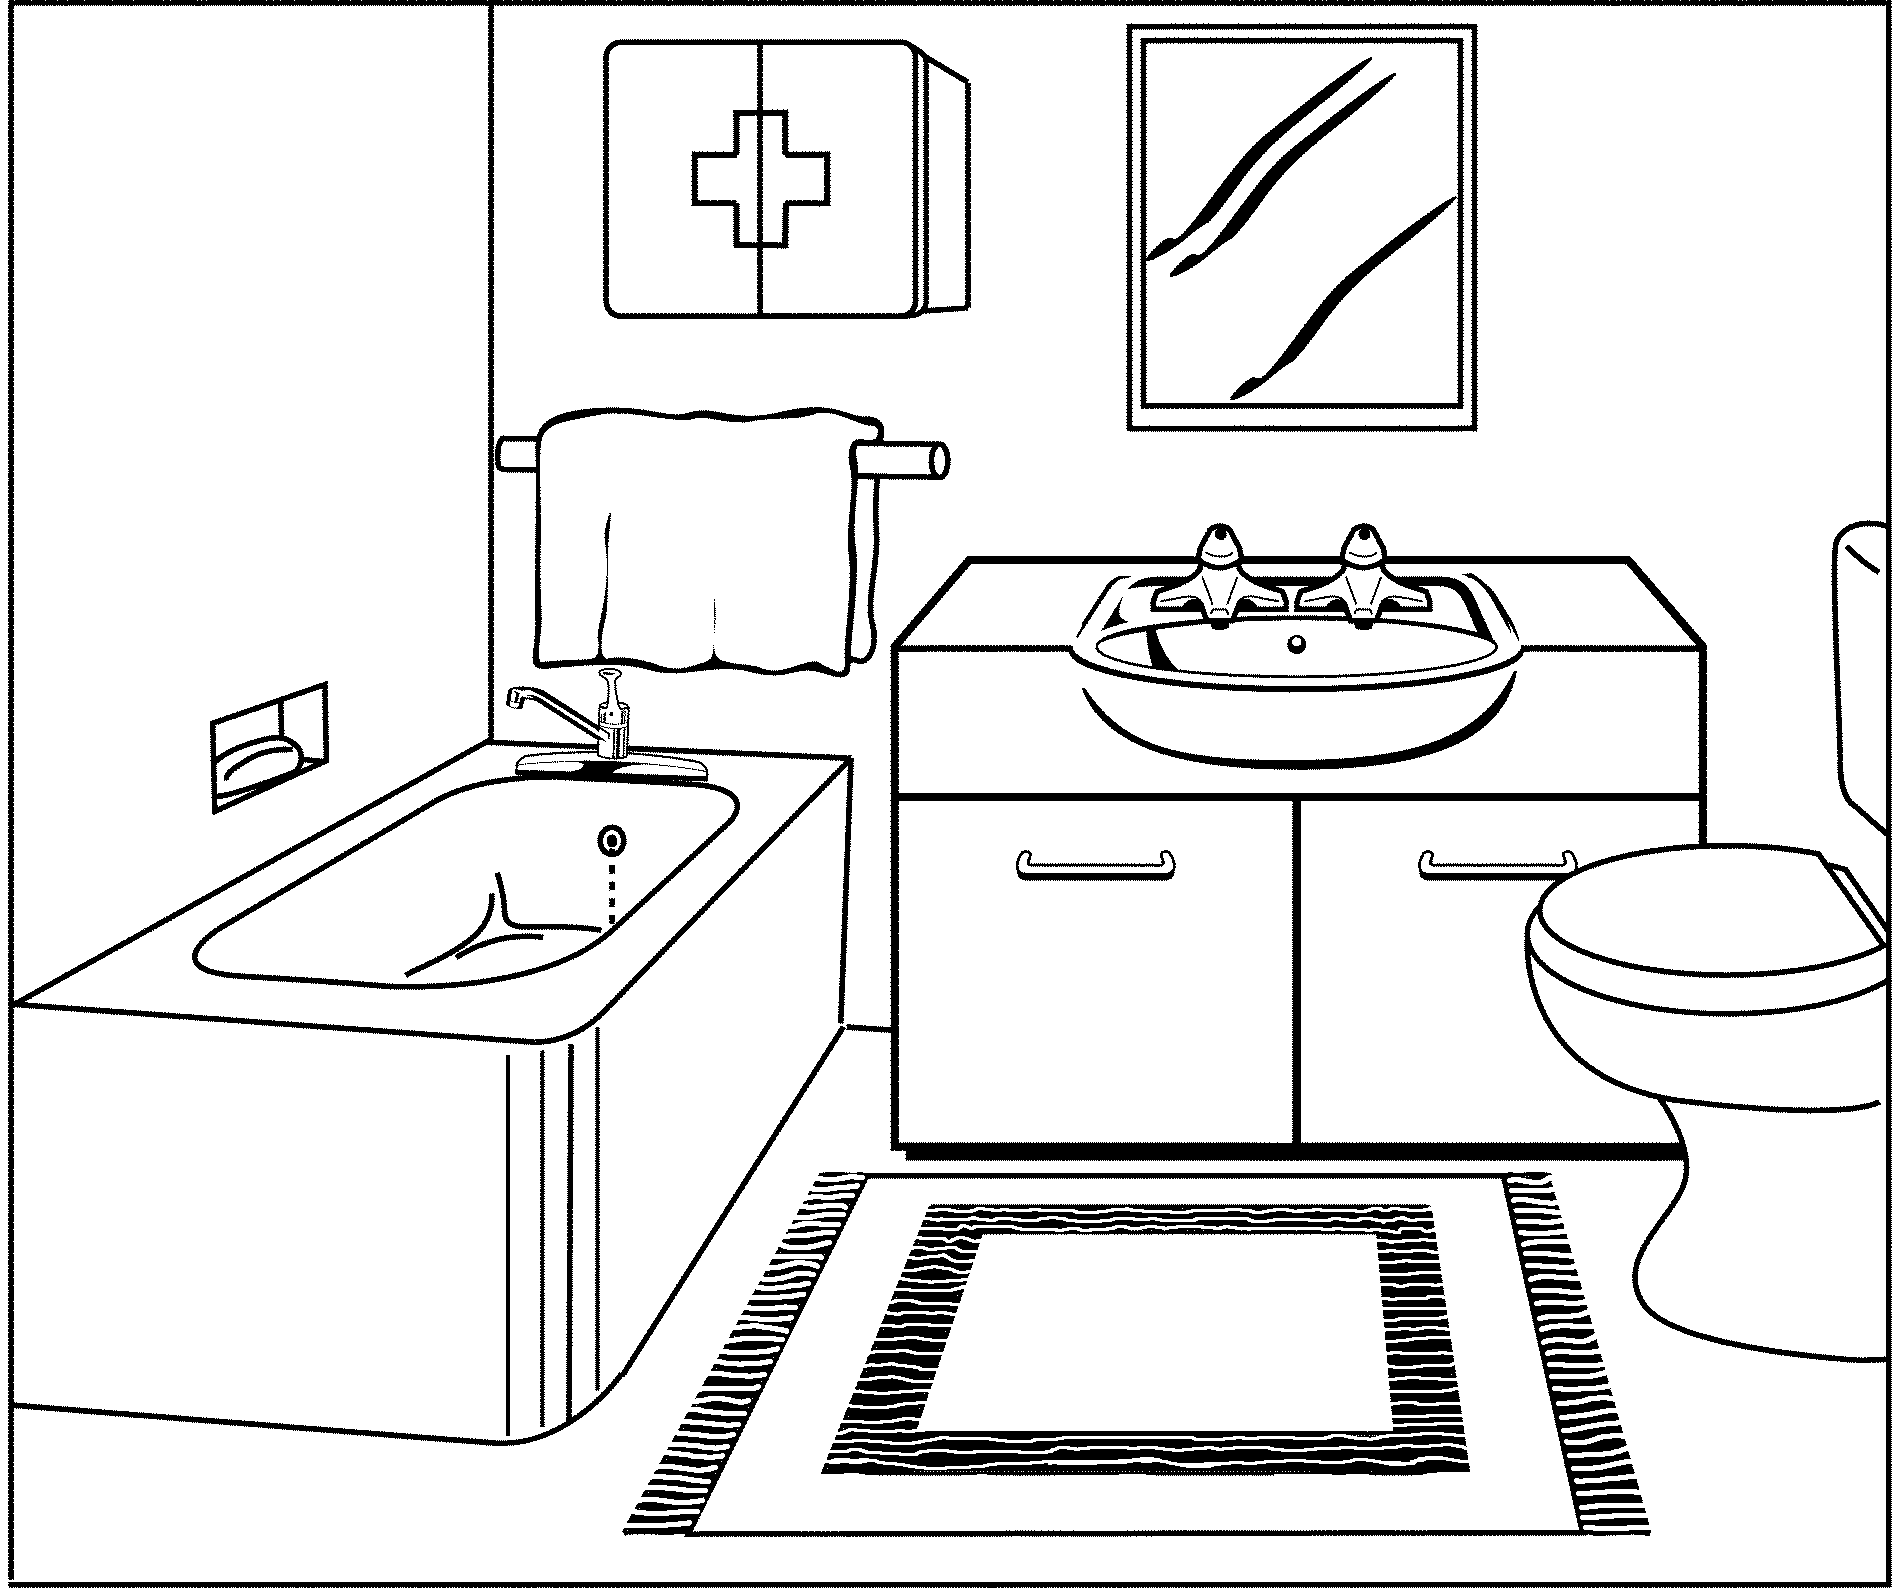 Bathroom section drawing - They First Go To The Bathroom Where Johnny Undressed Himself Last Night There S Nothing On The Floor Except The Bath Mat They Know That The Sandal